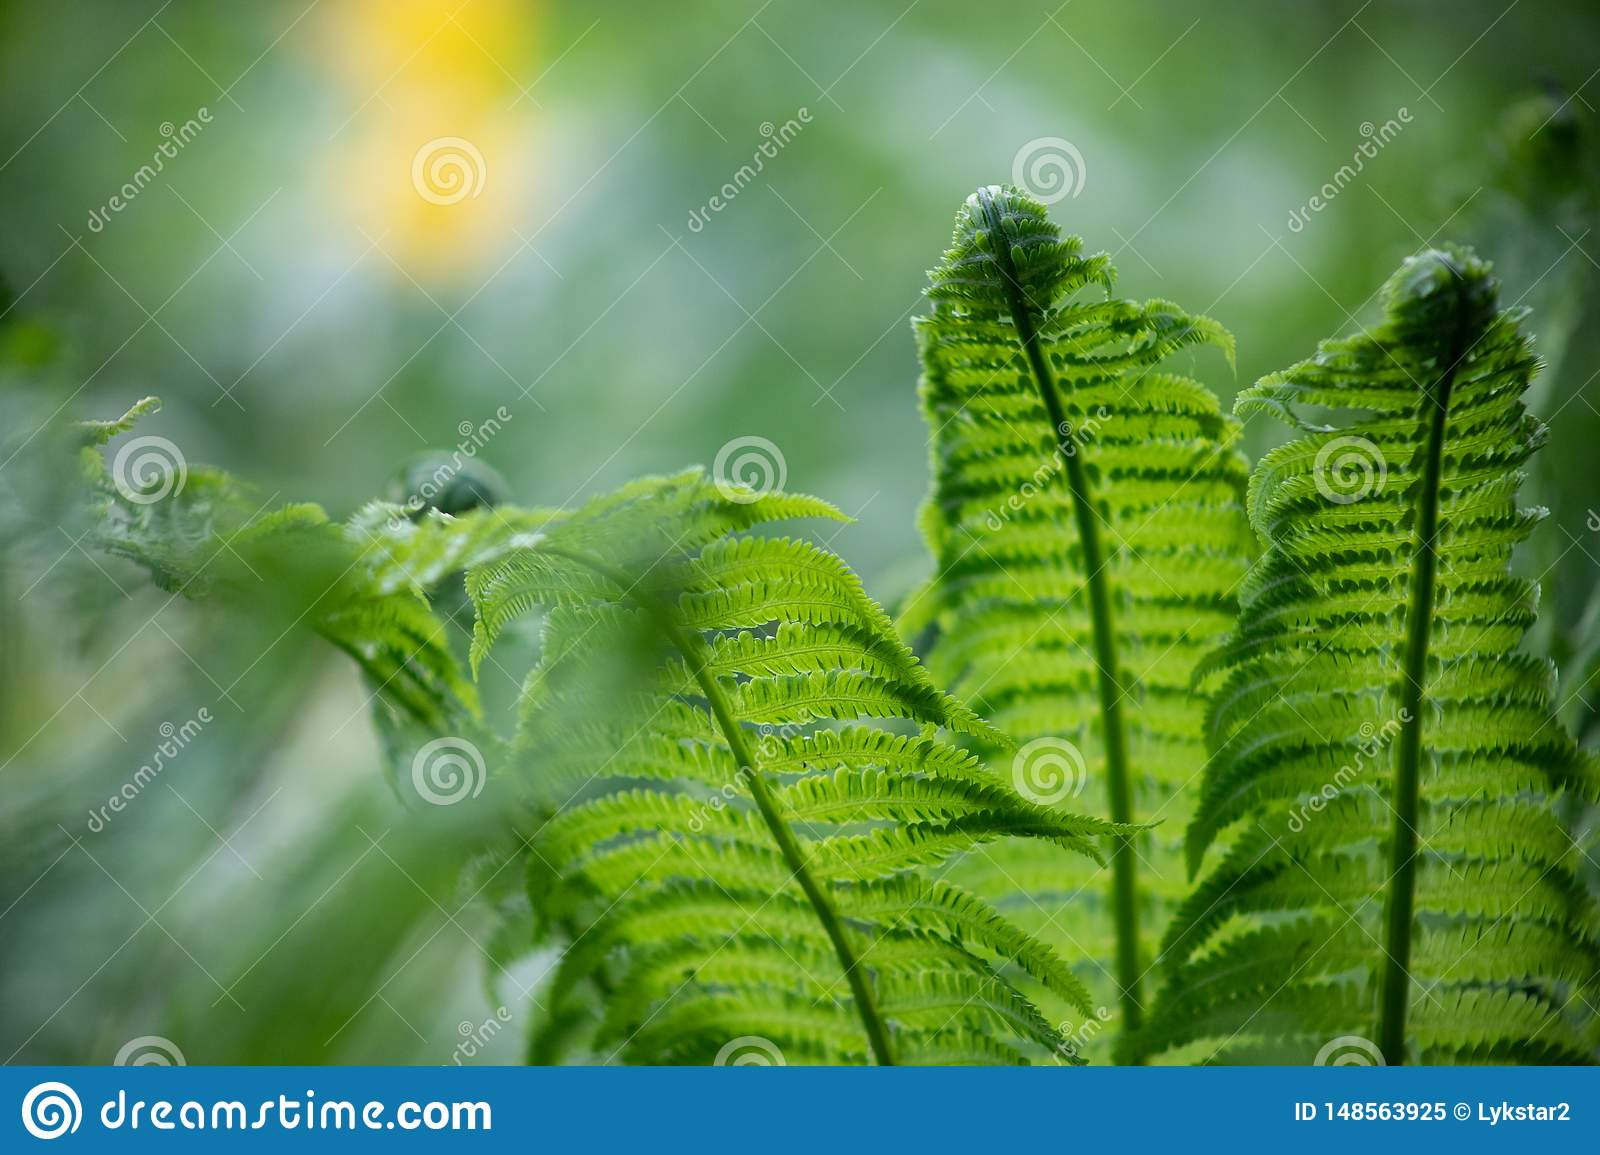 Green fern leaves close-up Blurred natural background